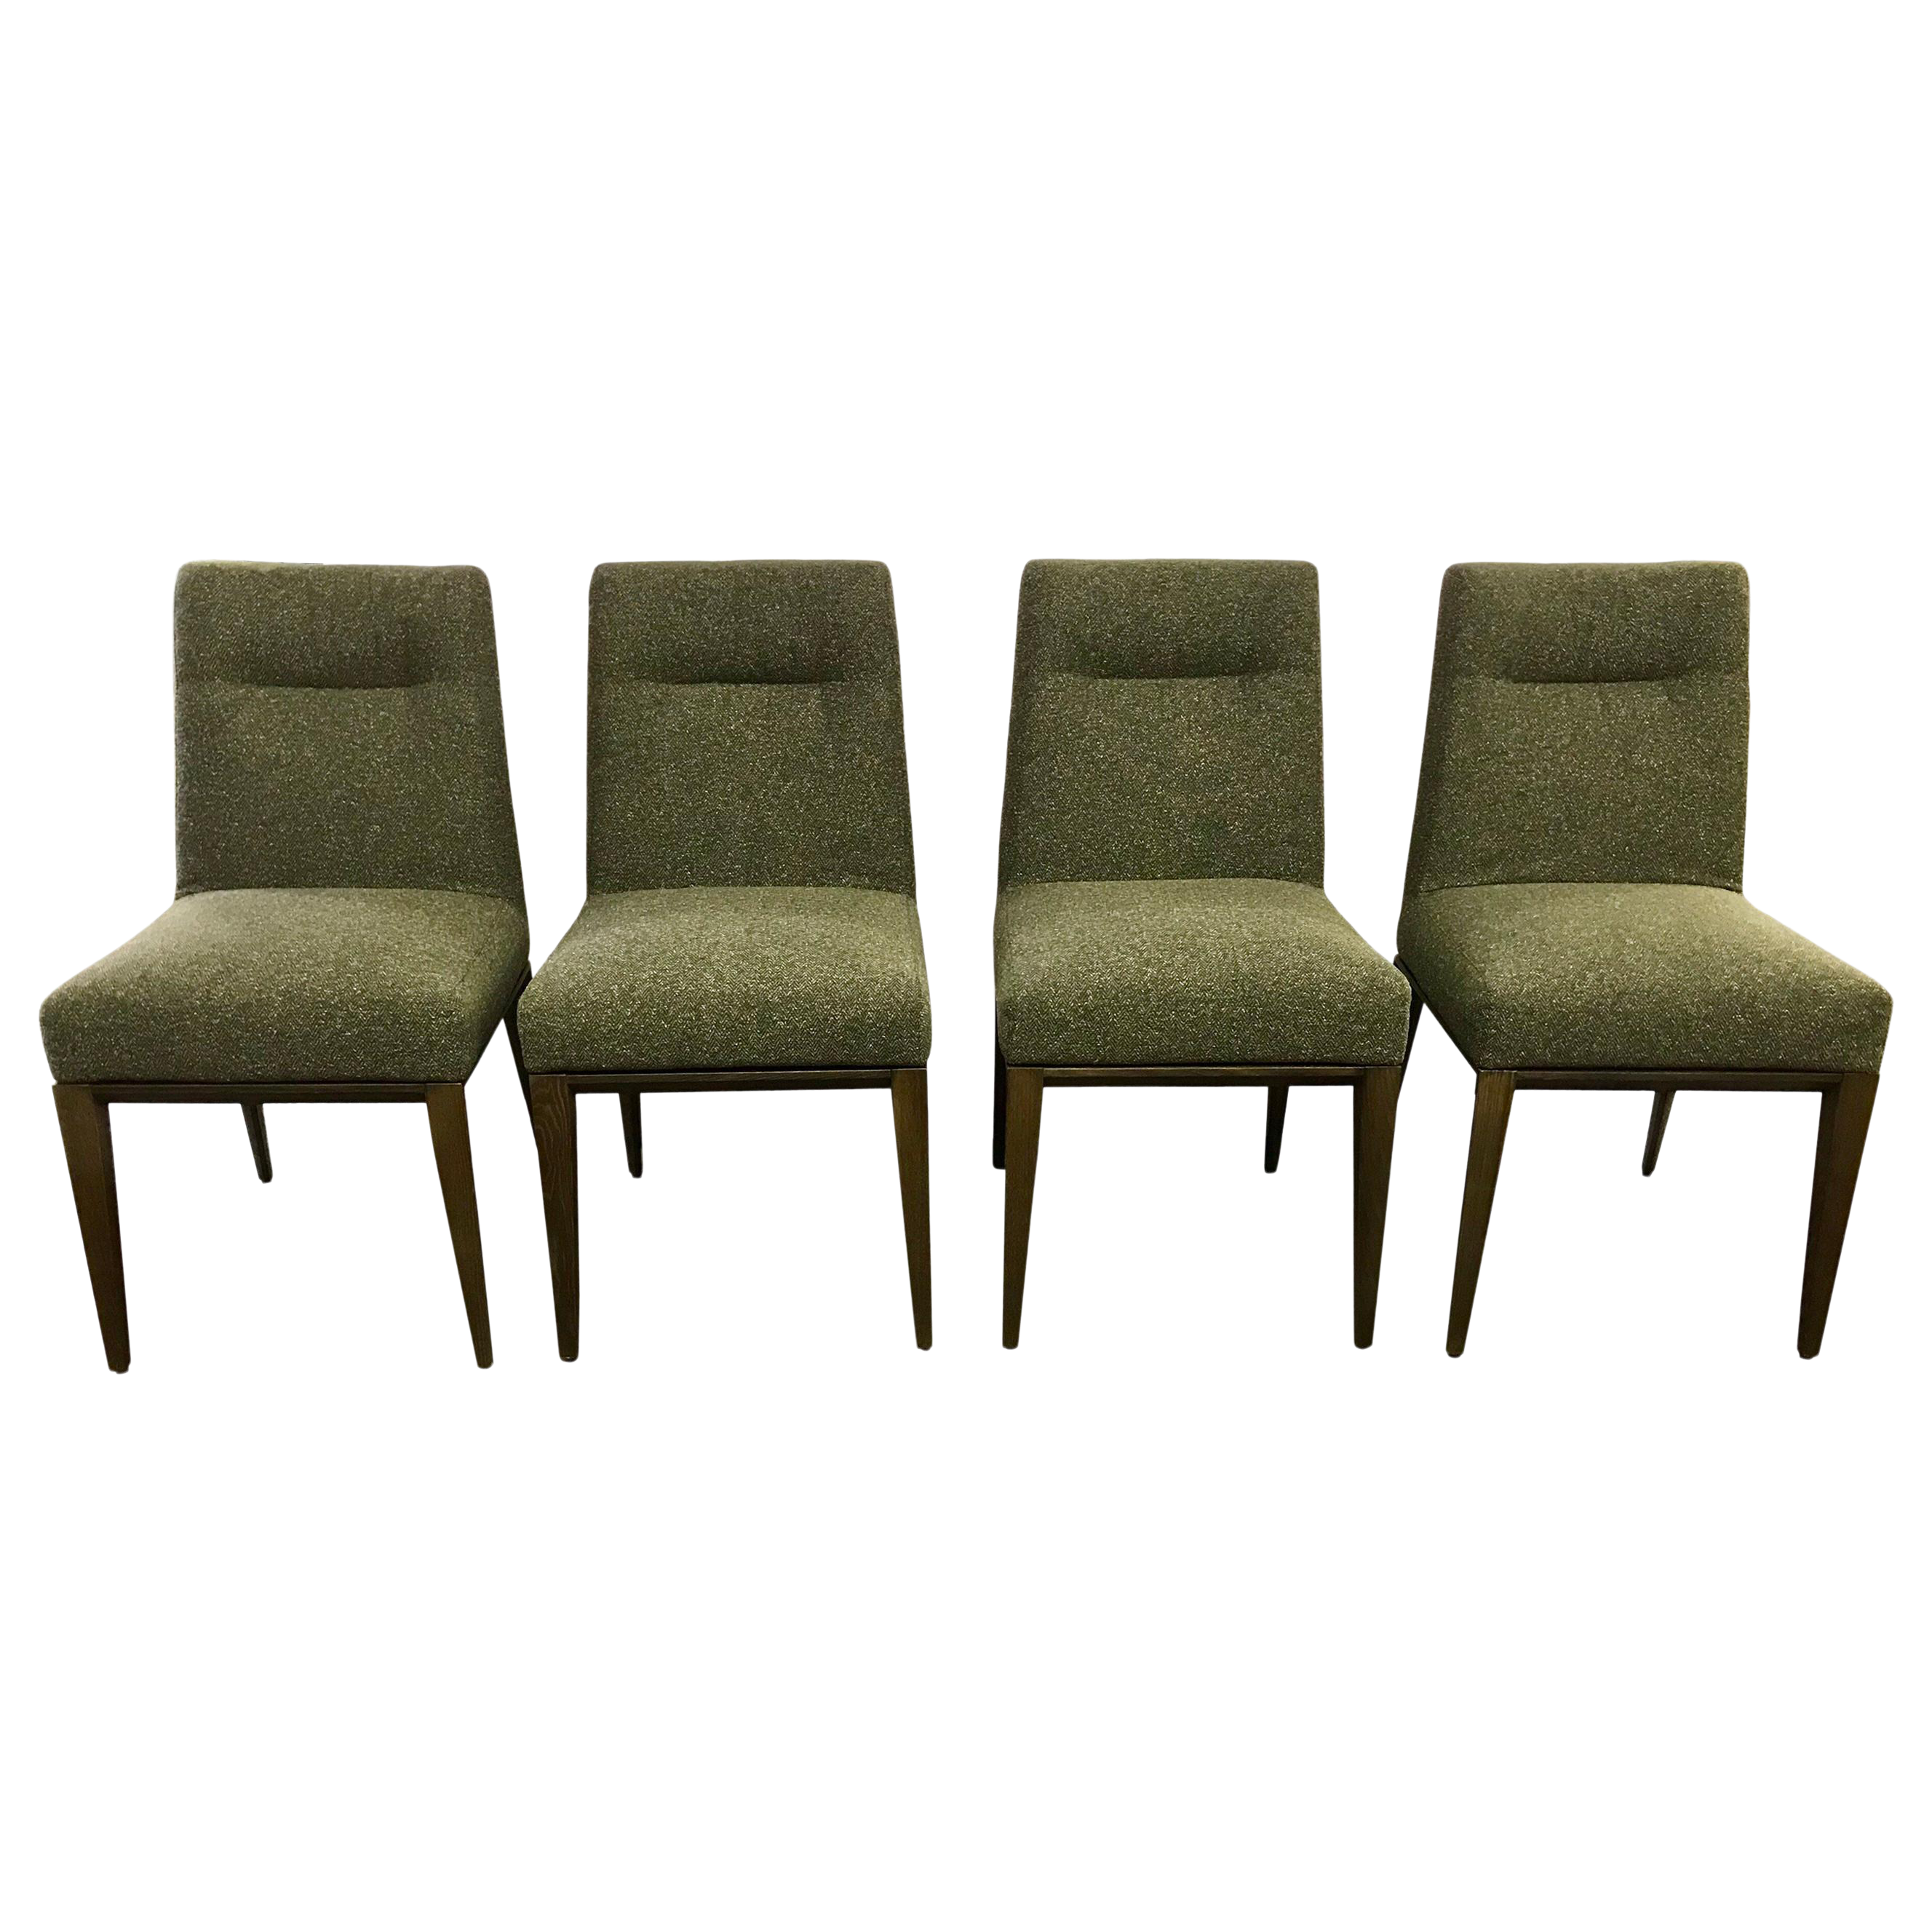 Astonishing Set Of Four Calligaris Italy Olive Tweed Weave Upholstered Dining Chairs Lamtechconsult Wood Chair Design Ideas Lamtechconsultcom